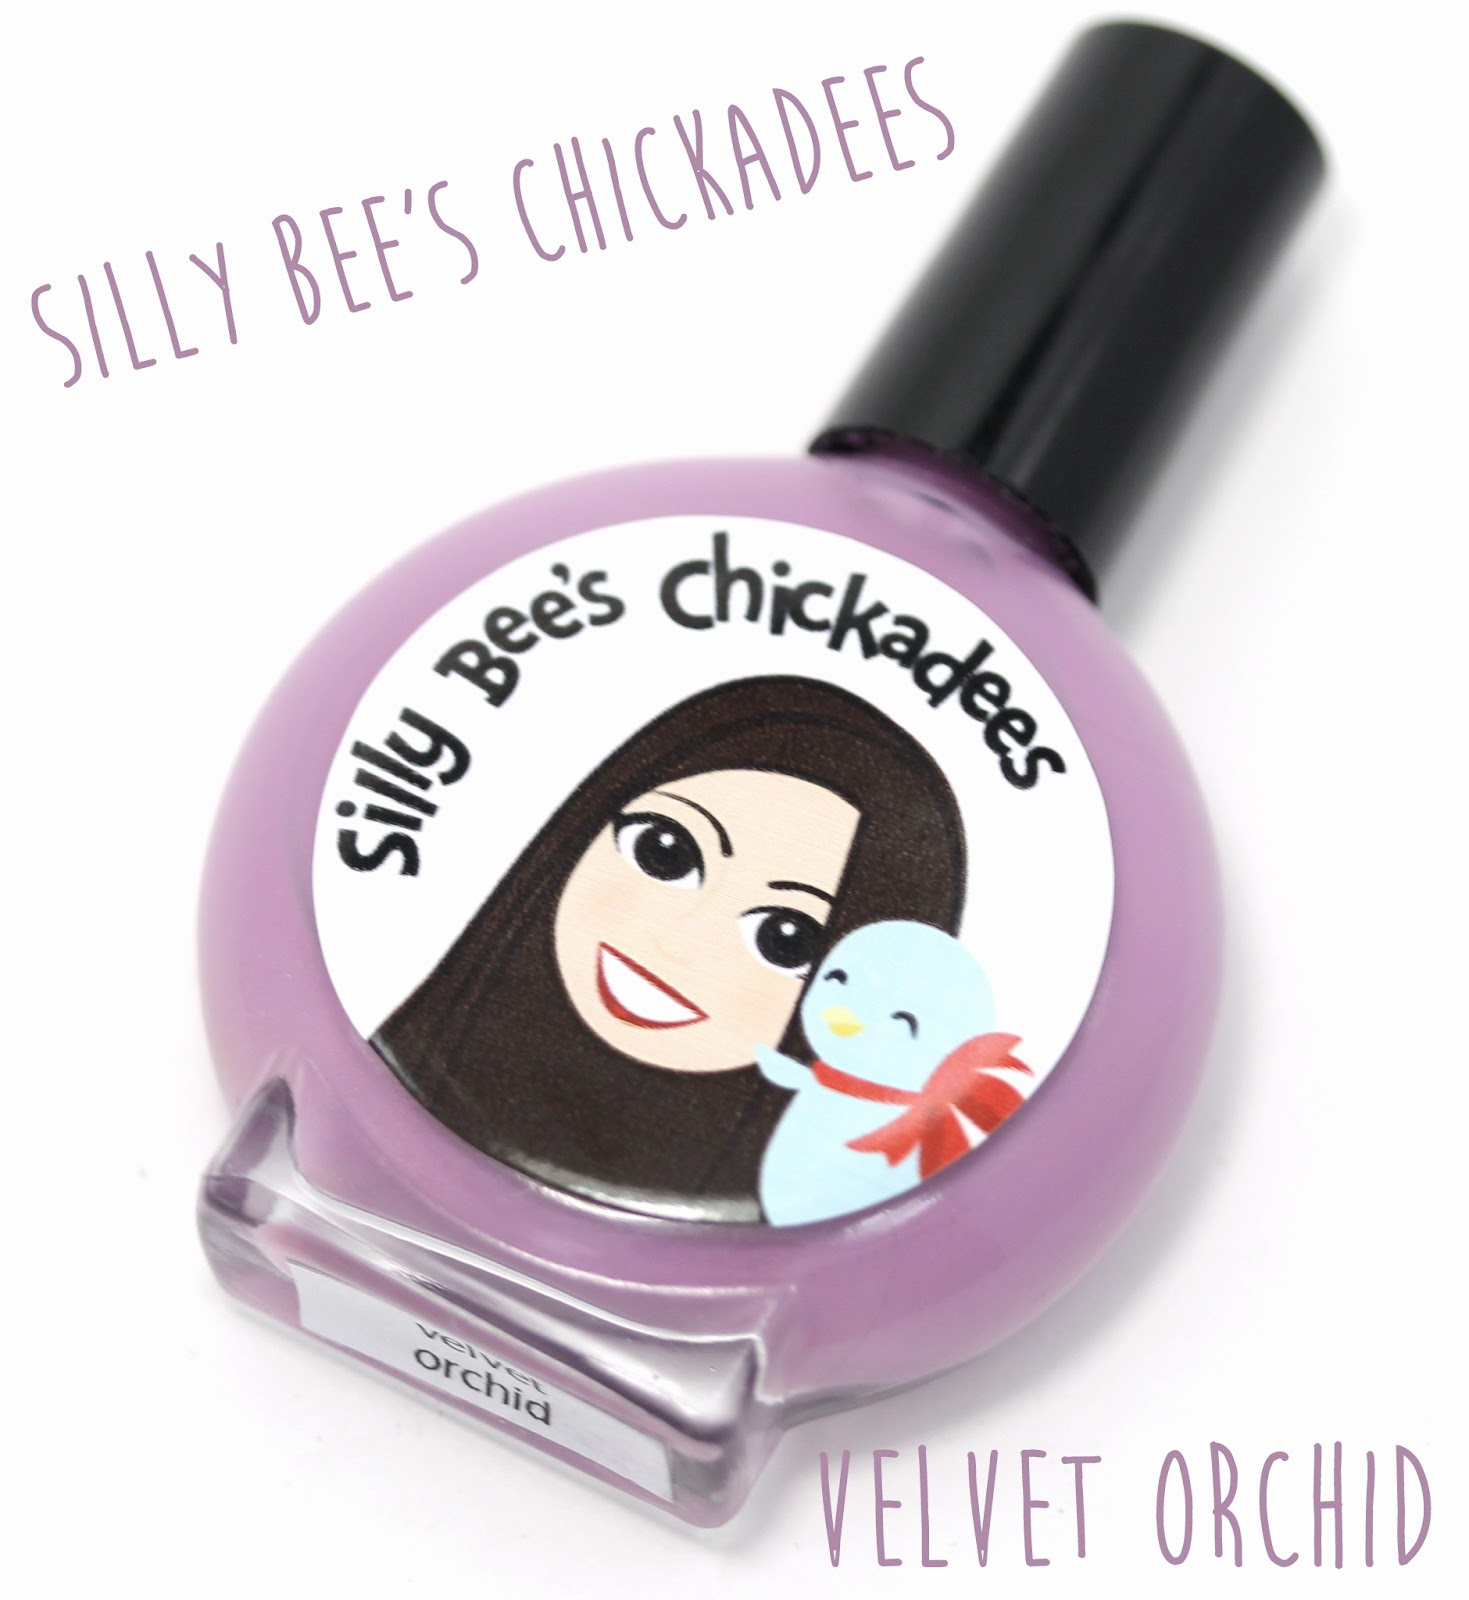 Silly Bee's Chickadees Velvet Orchid